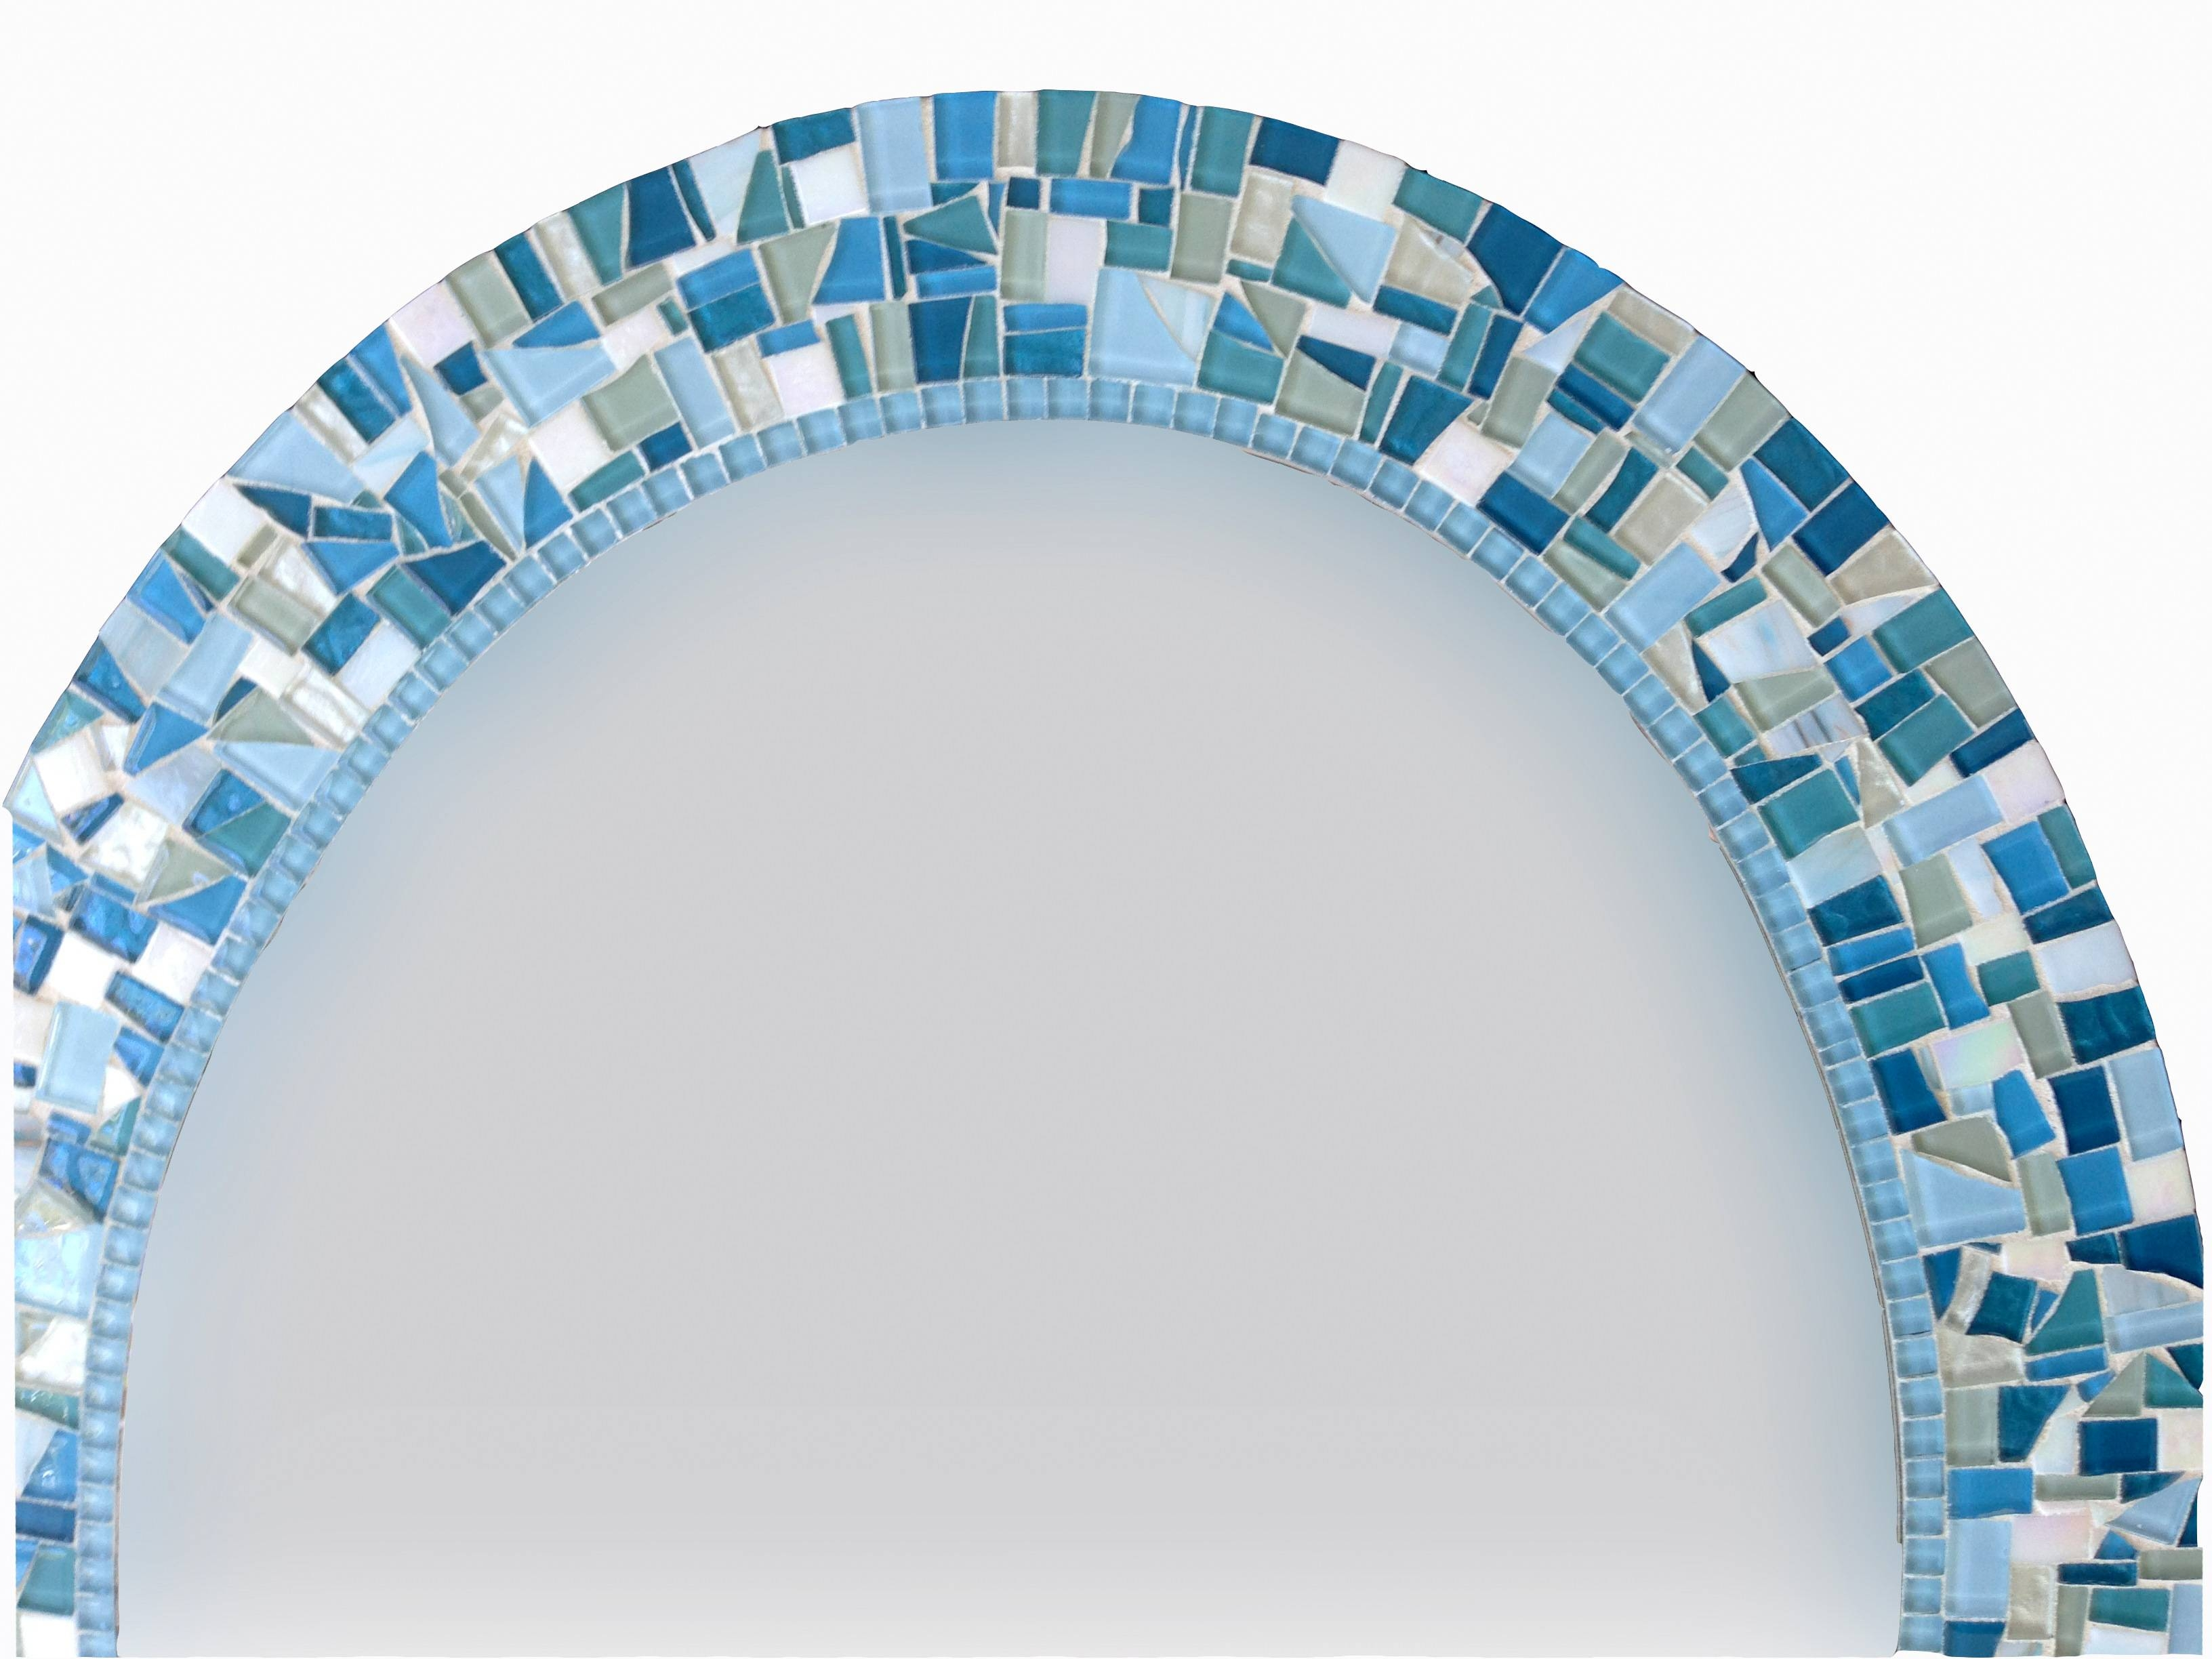 Oval Mosaic Wall Mirror - : with Mosaic Wall Mirrors (Image 19 of 25)